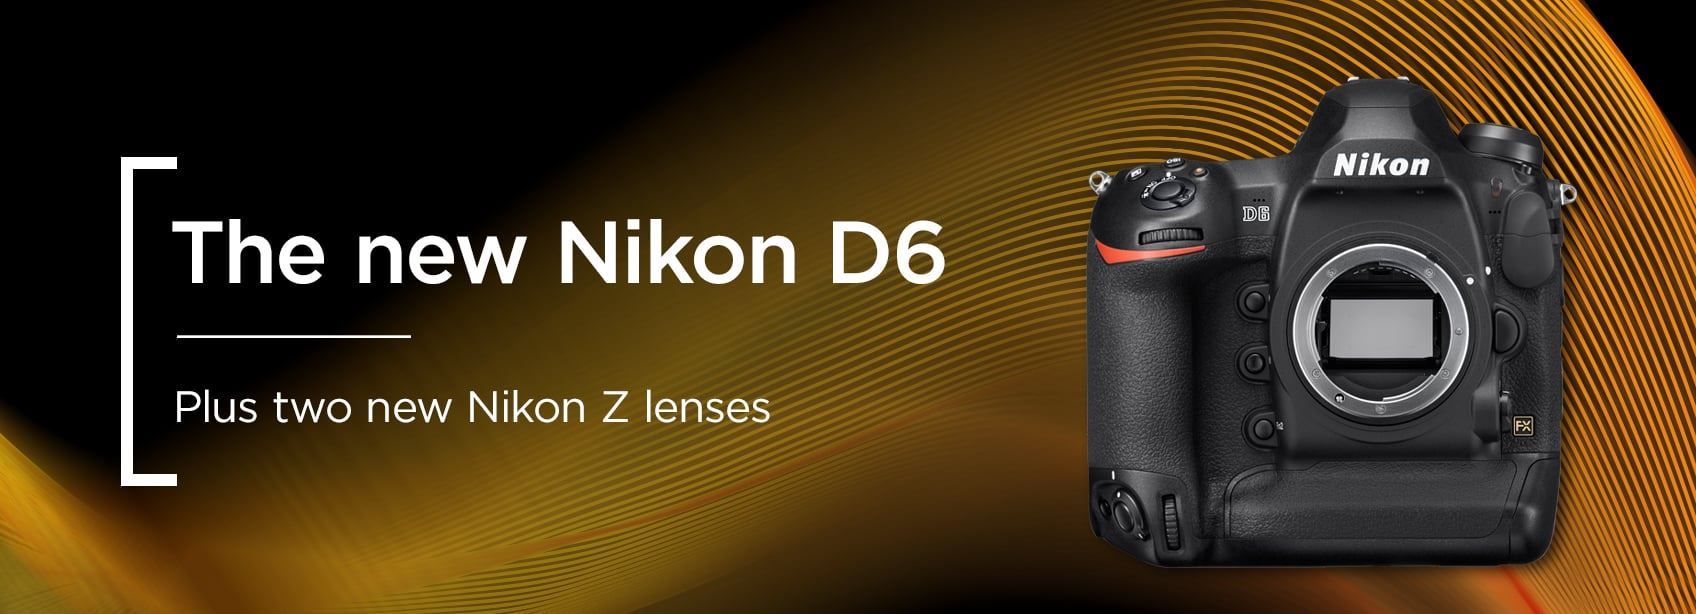 The new Nikon D6 - plus two new Nikon Z lenses